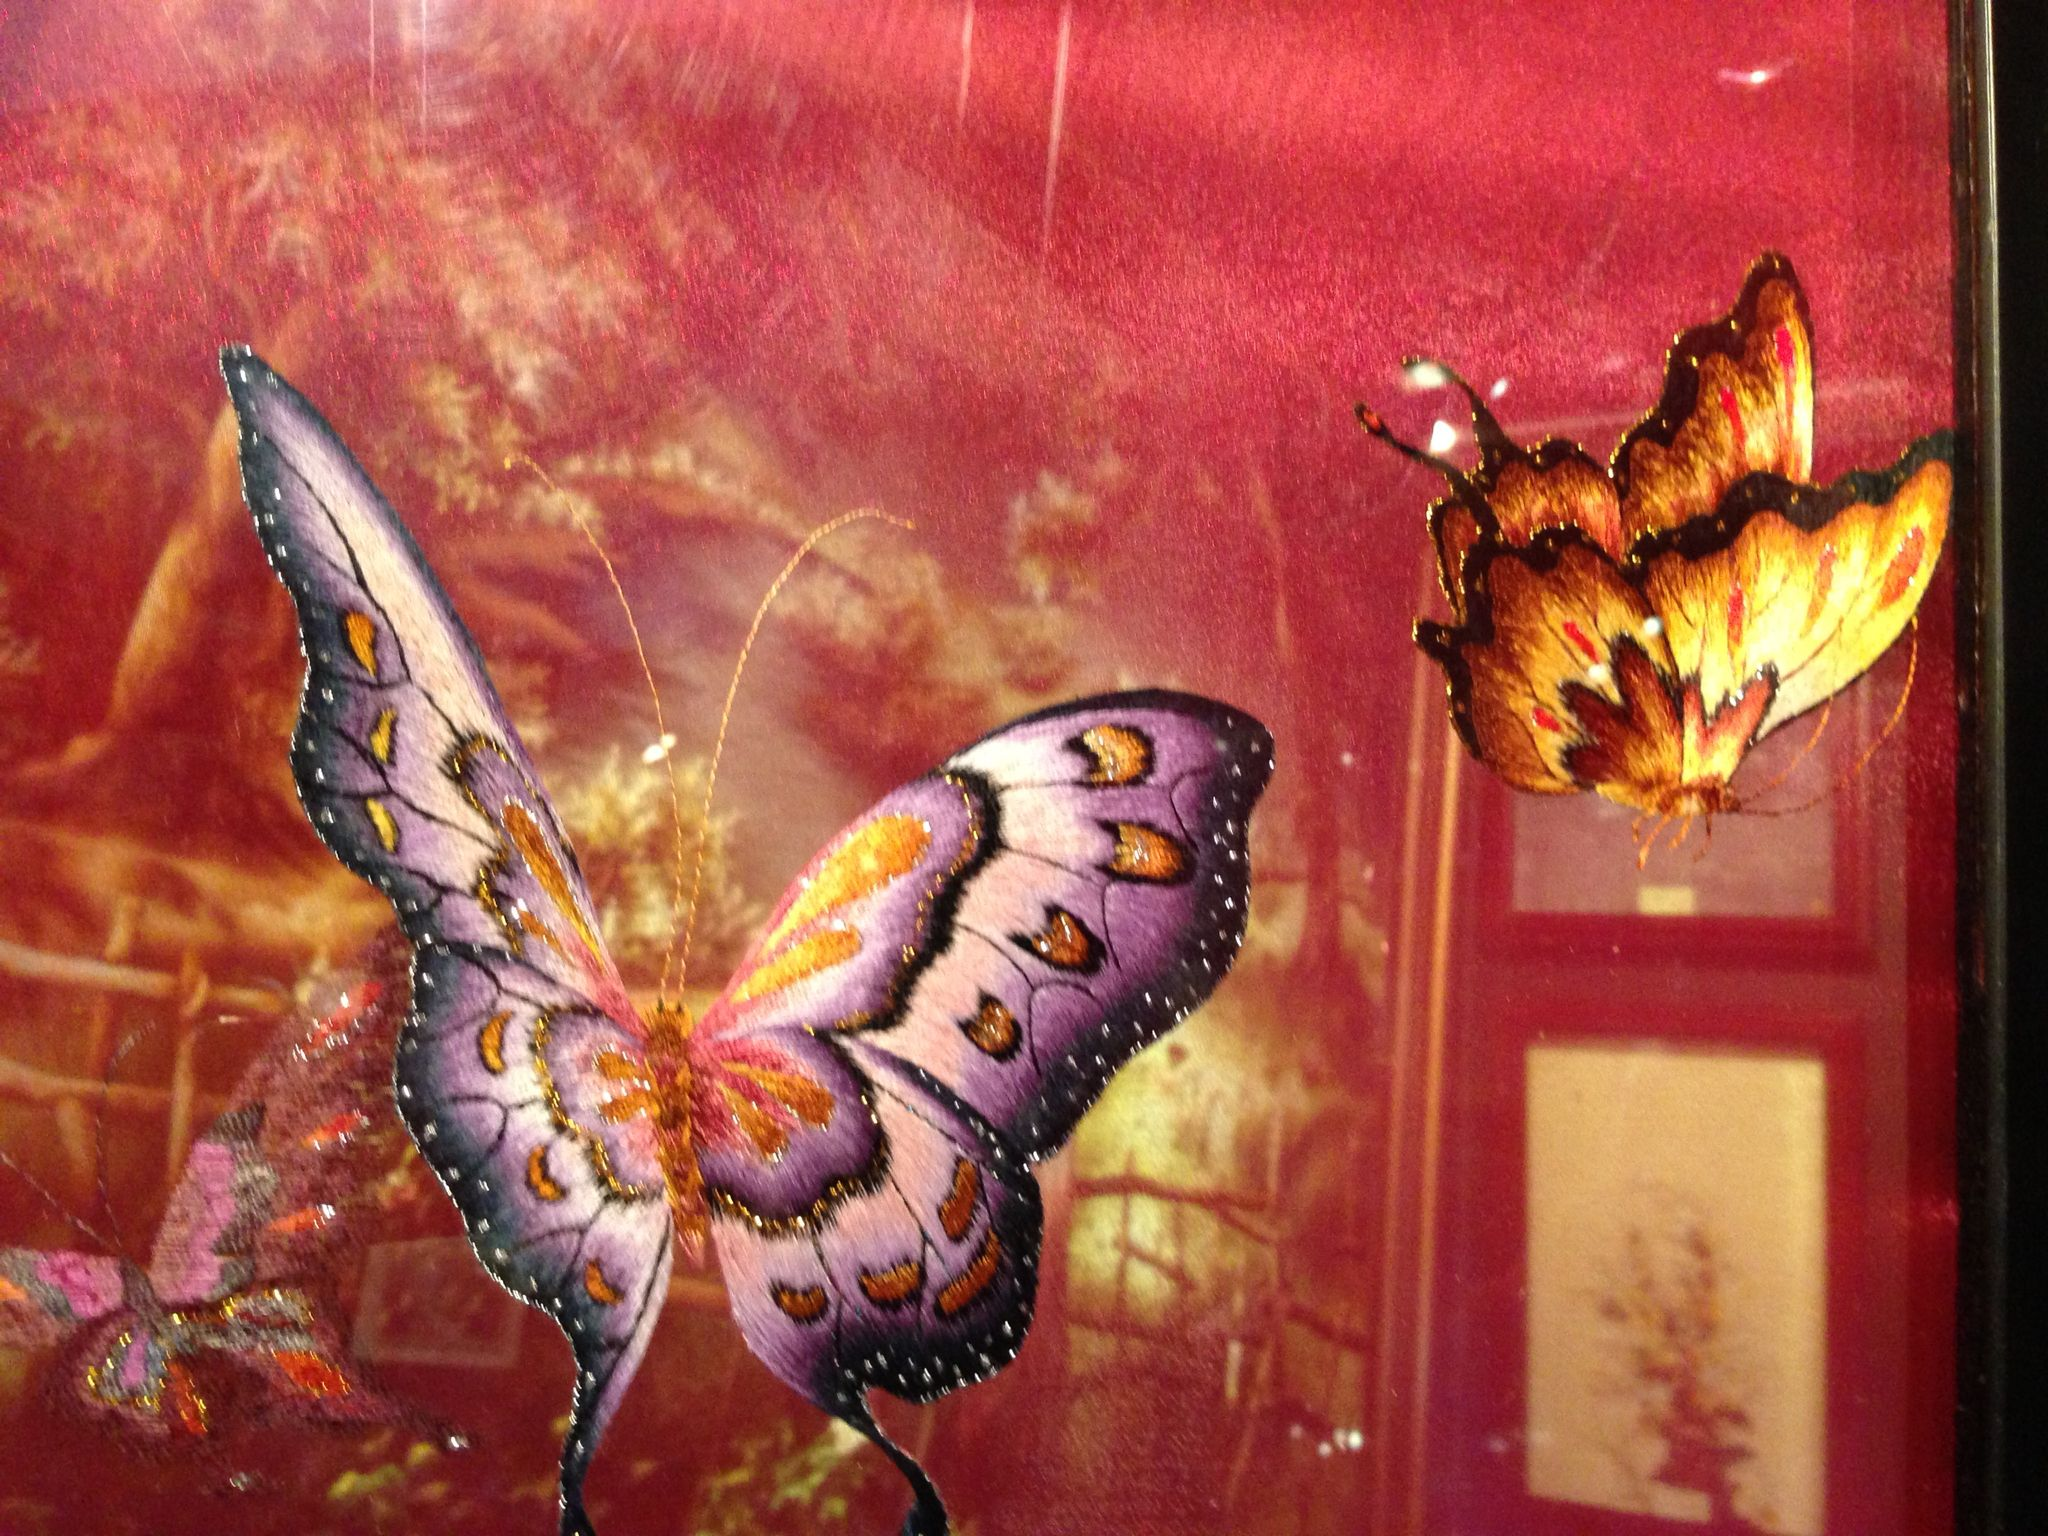 Butterfly embroidery by xq vietnam viet nam